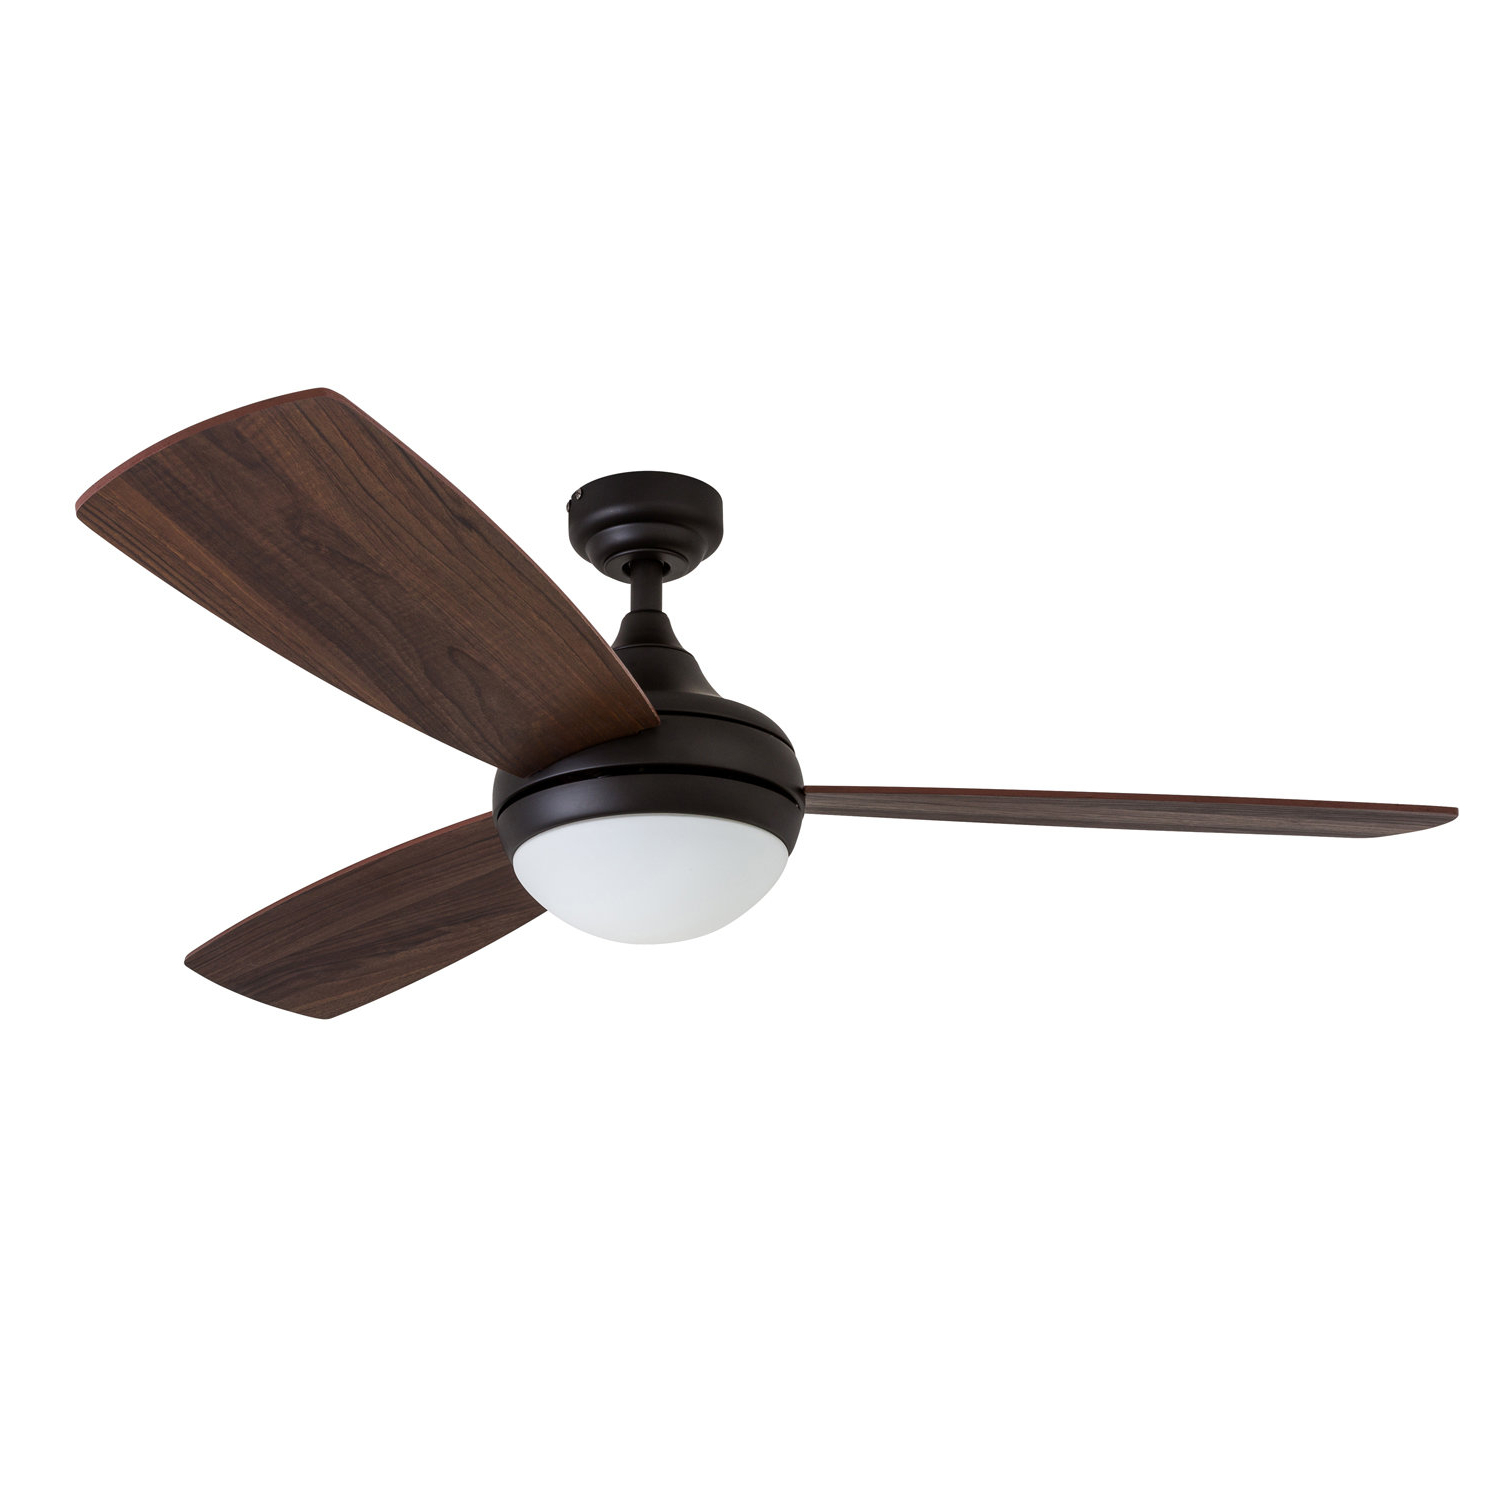 """Sentinel 3 Blade Led Ceiling Fans With Remote Within Most Popular 52"""" Alyce 3 Blade Led Ceiling Fan With Remote Control (View 19 of 20)"""